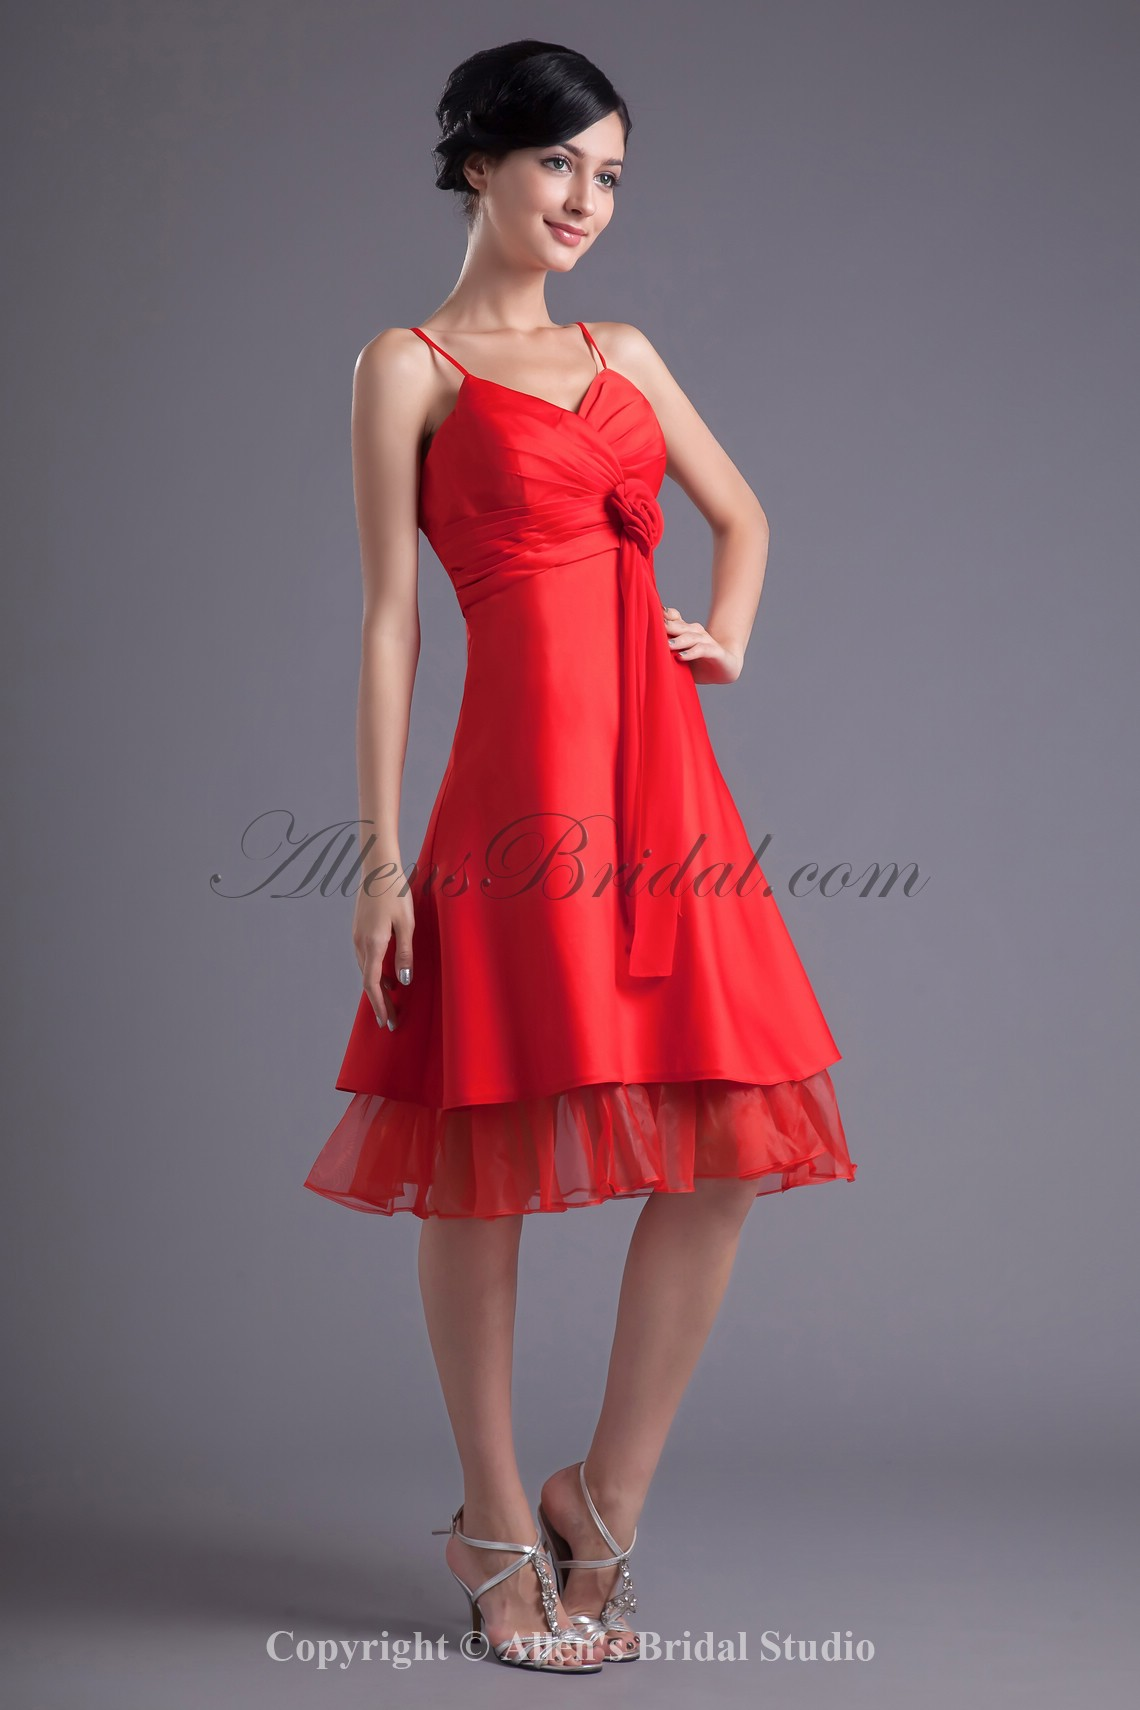 /38-298/satin-and-organza-spaghetti-neckline-a-line-knee-length-flower-cocktail-dress.jpg